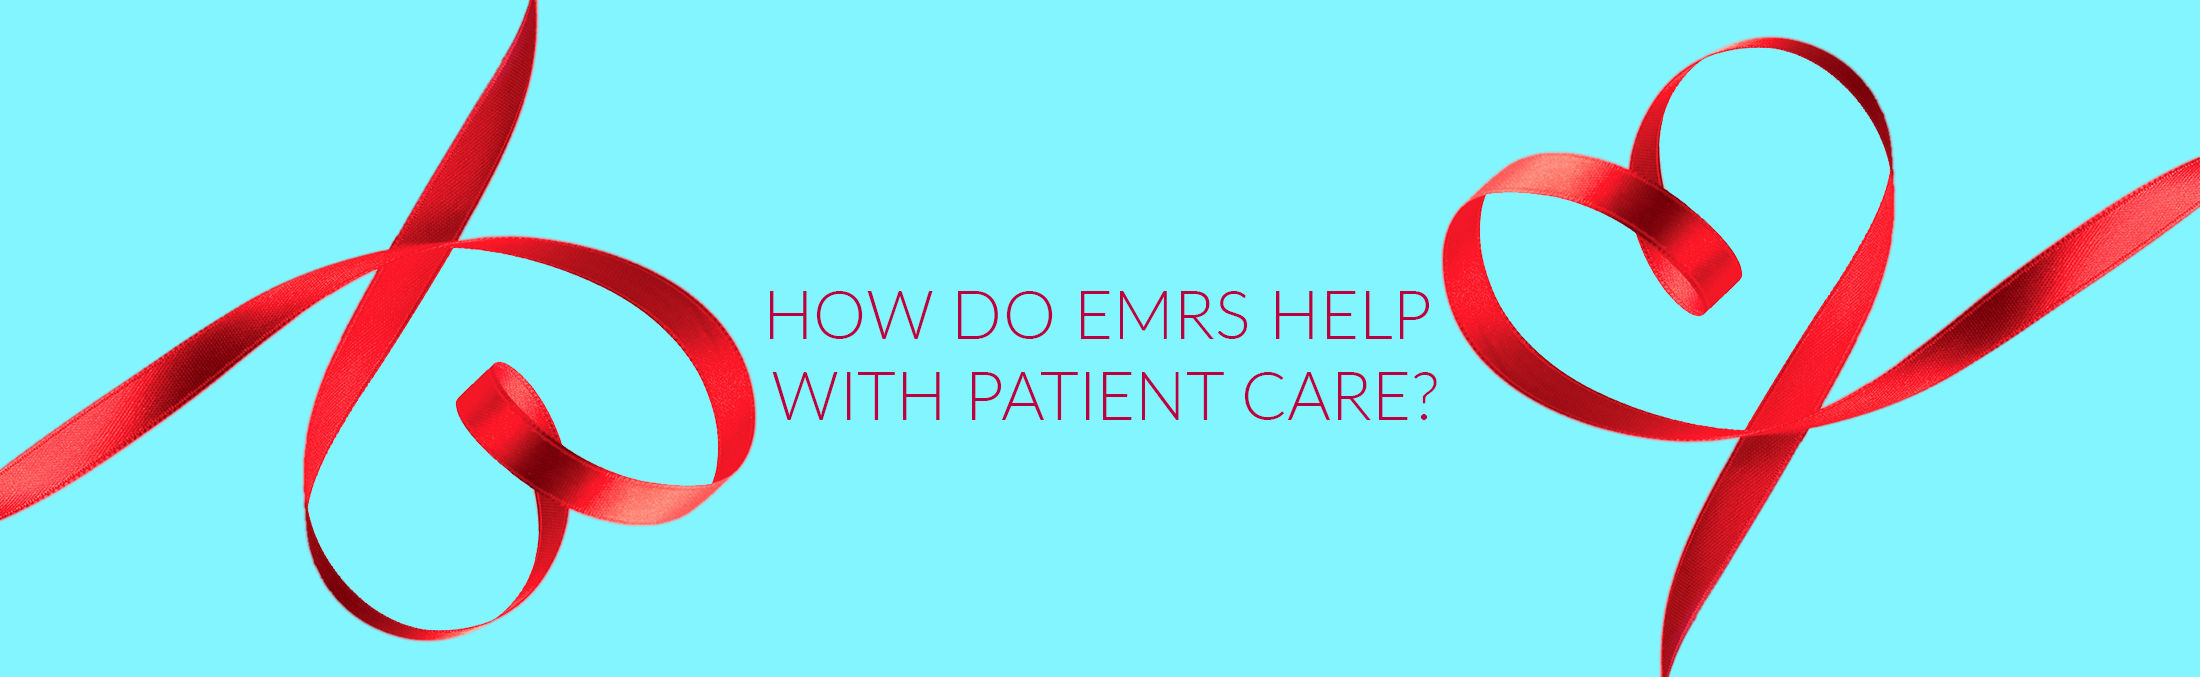 how emrs help patient care